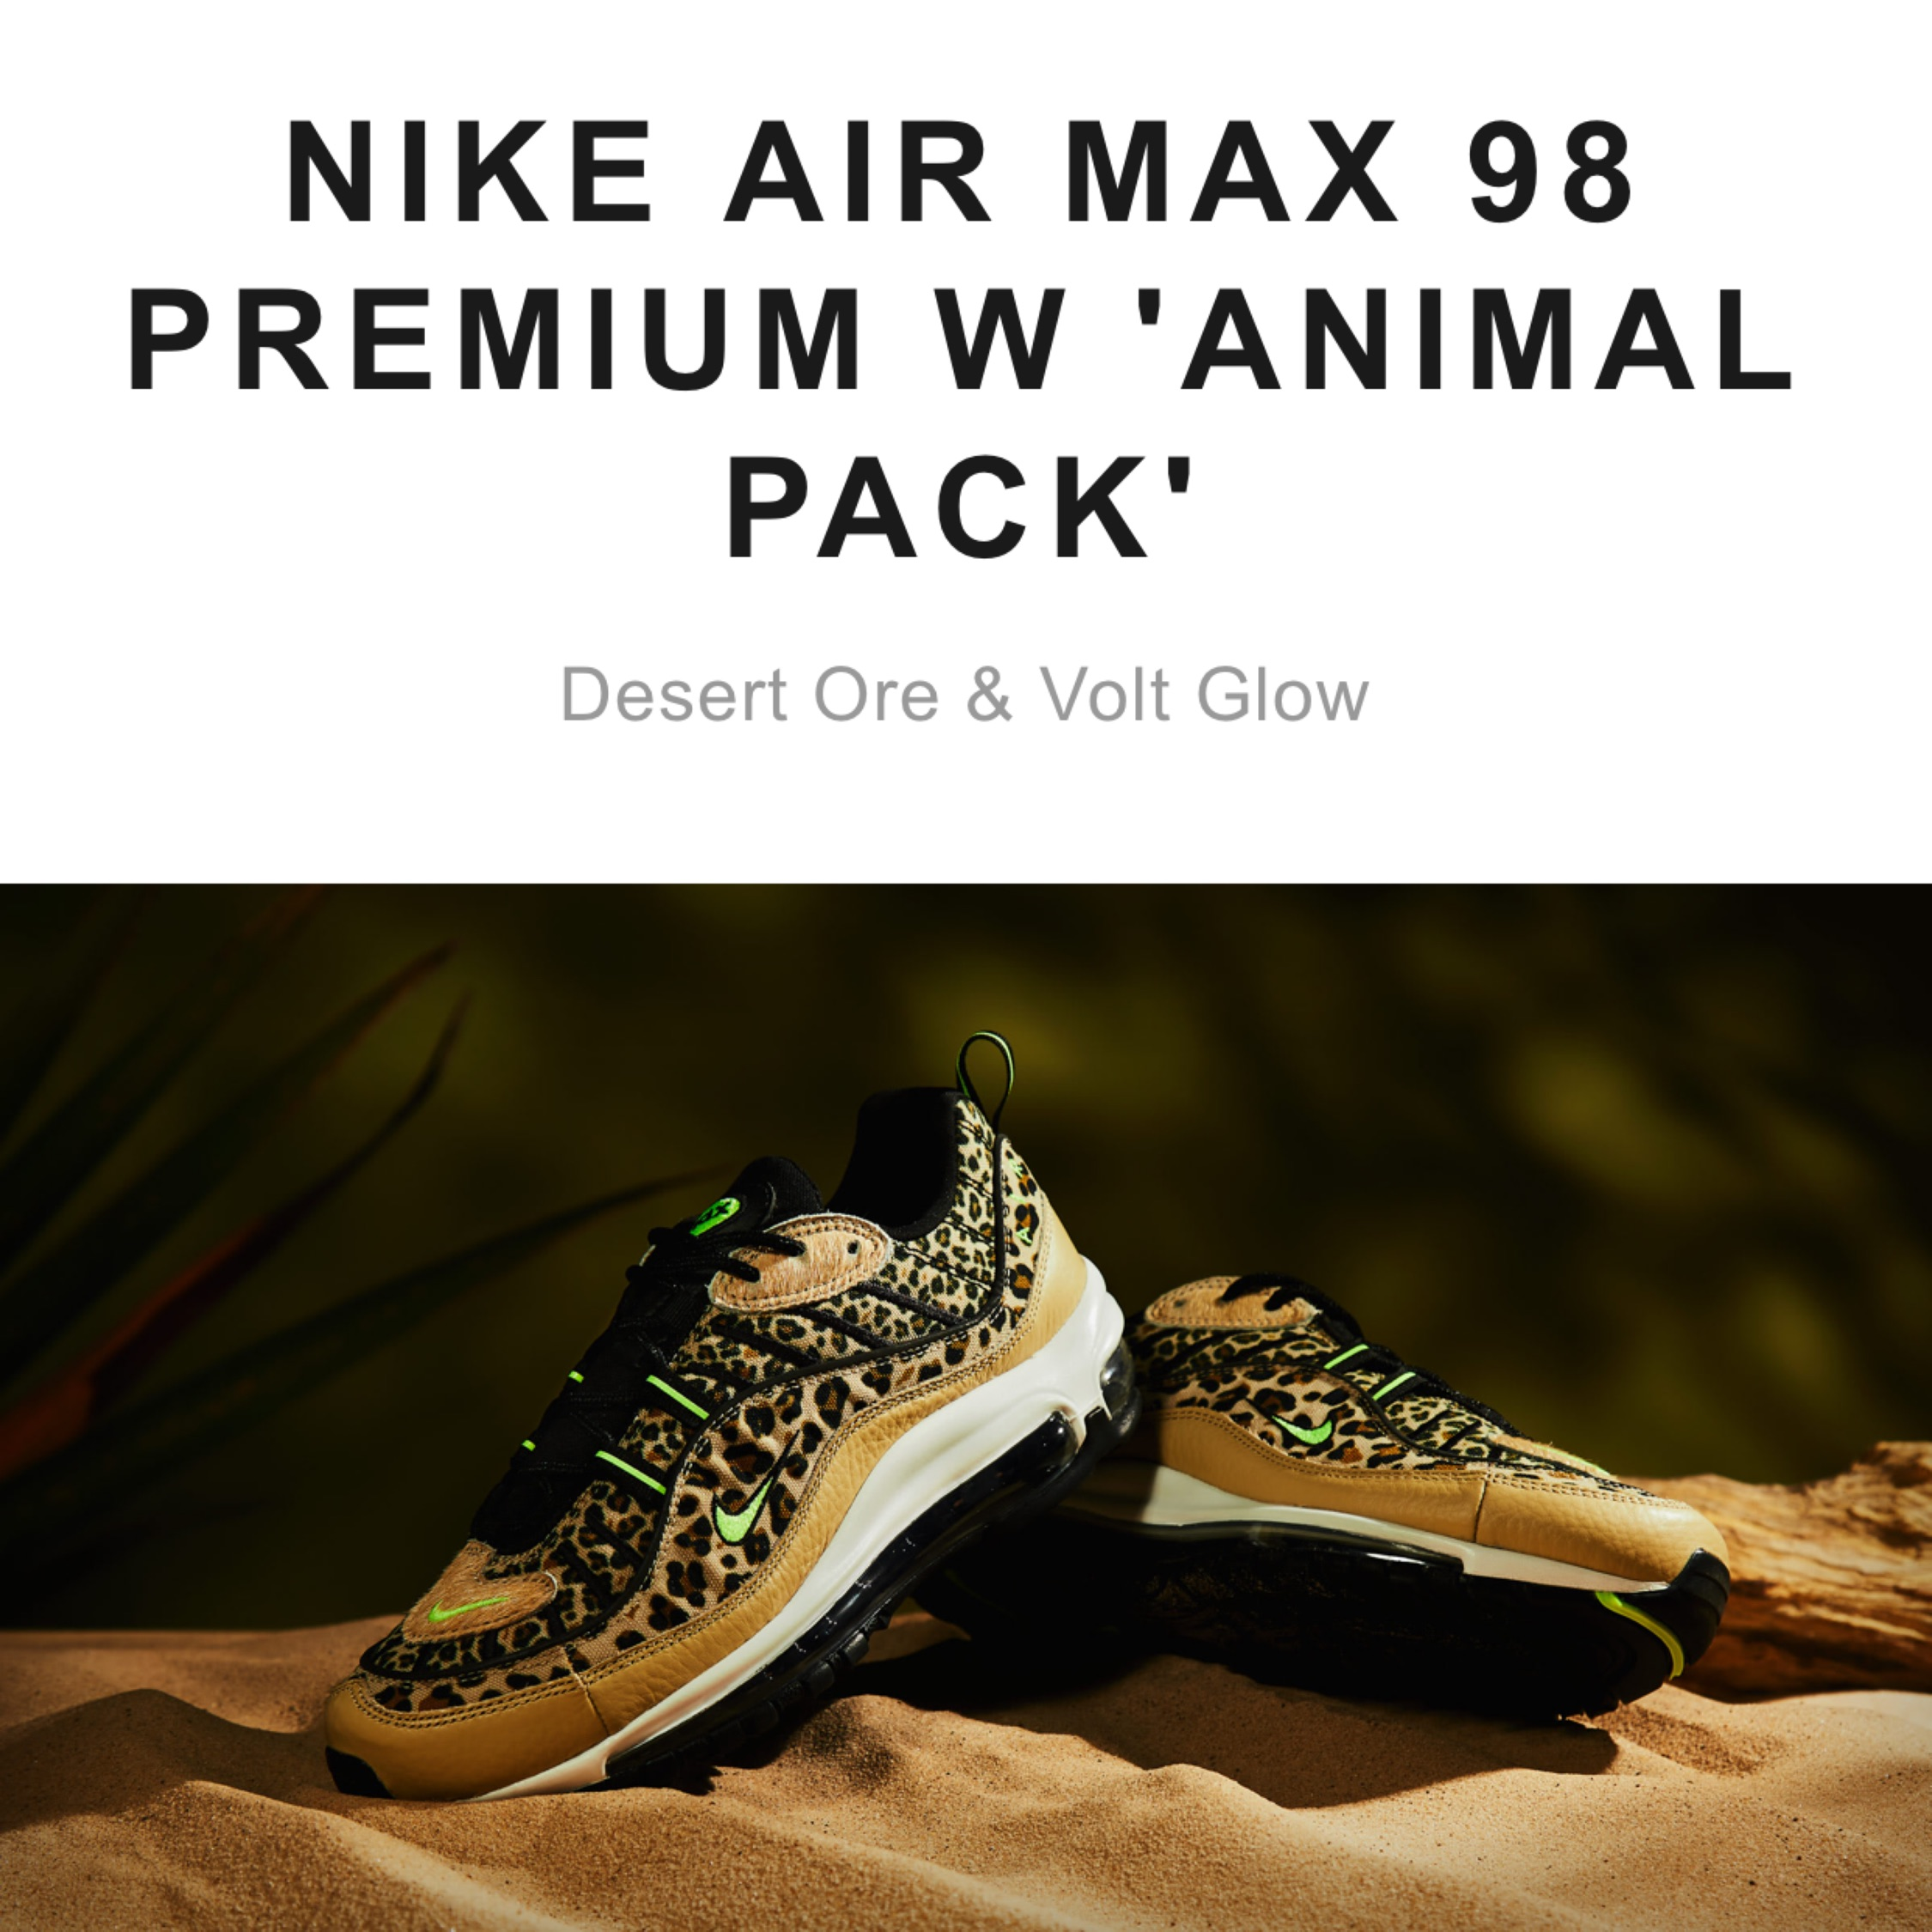 Nike Air Max 98 Premium W 'Animal Pack' | in Whickham, Tyne and Wear | Gumtree